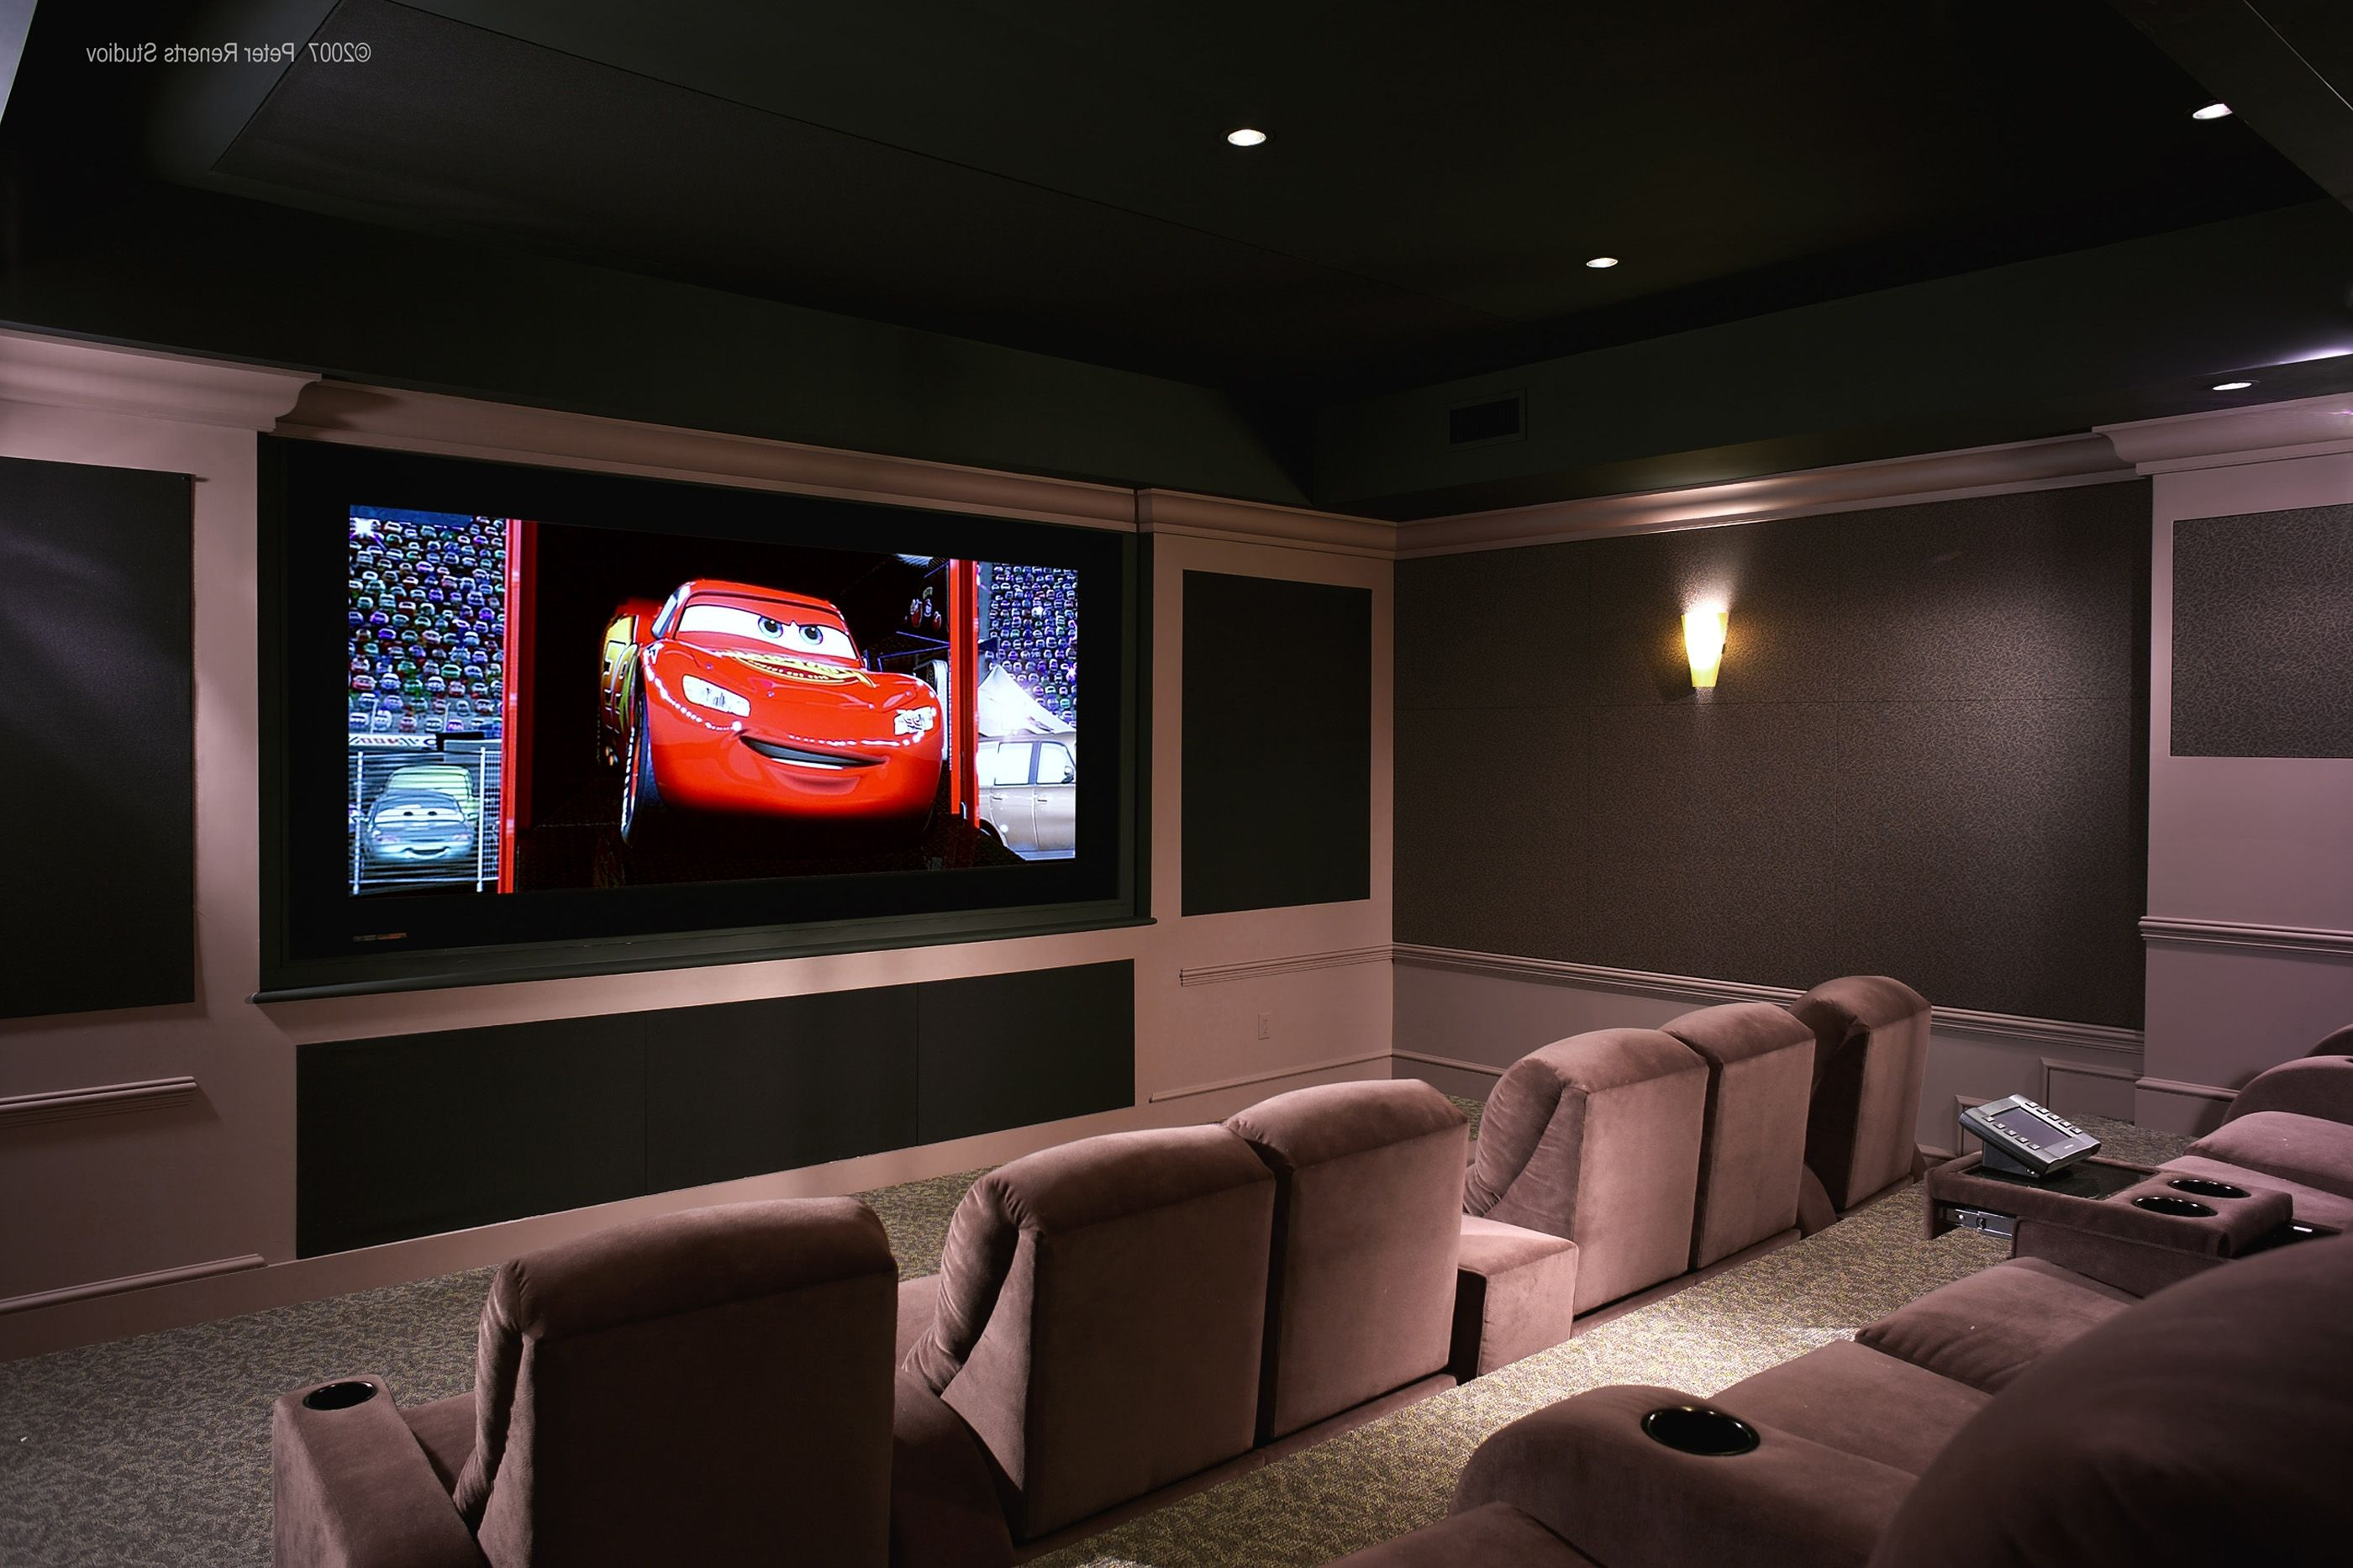 Charmant Home Theater Room Design Modern Home Design Small Home Cinema Room ,Backgrounds